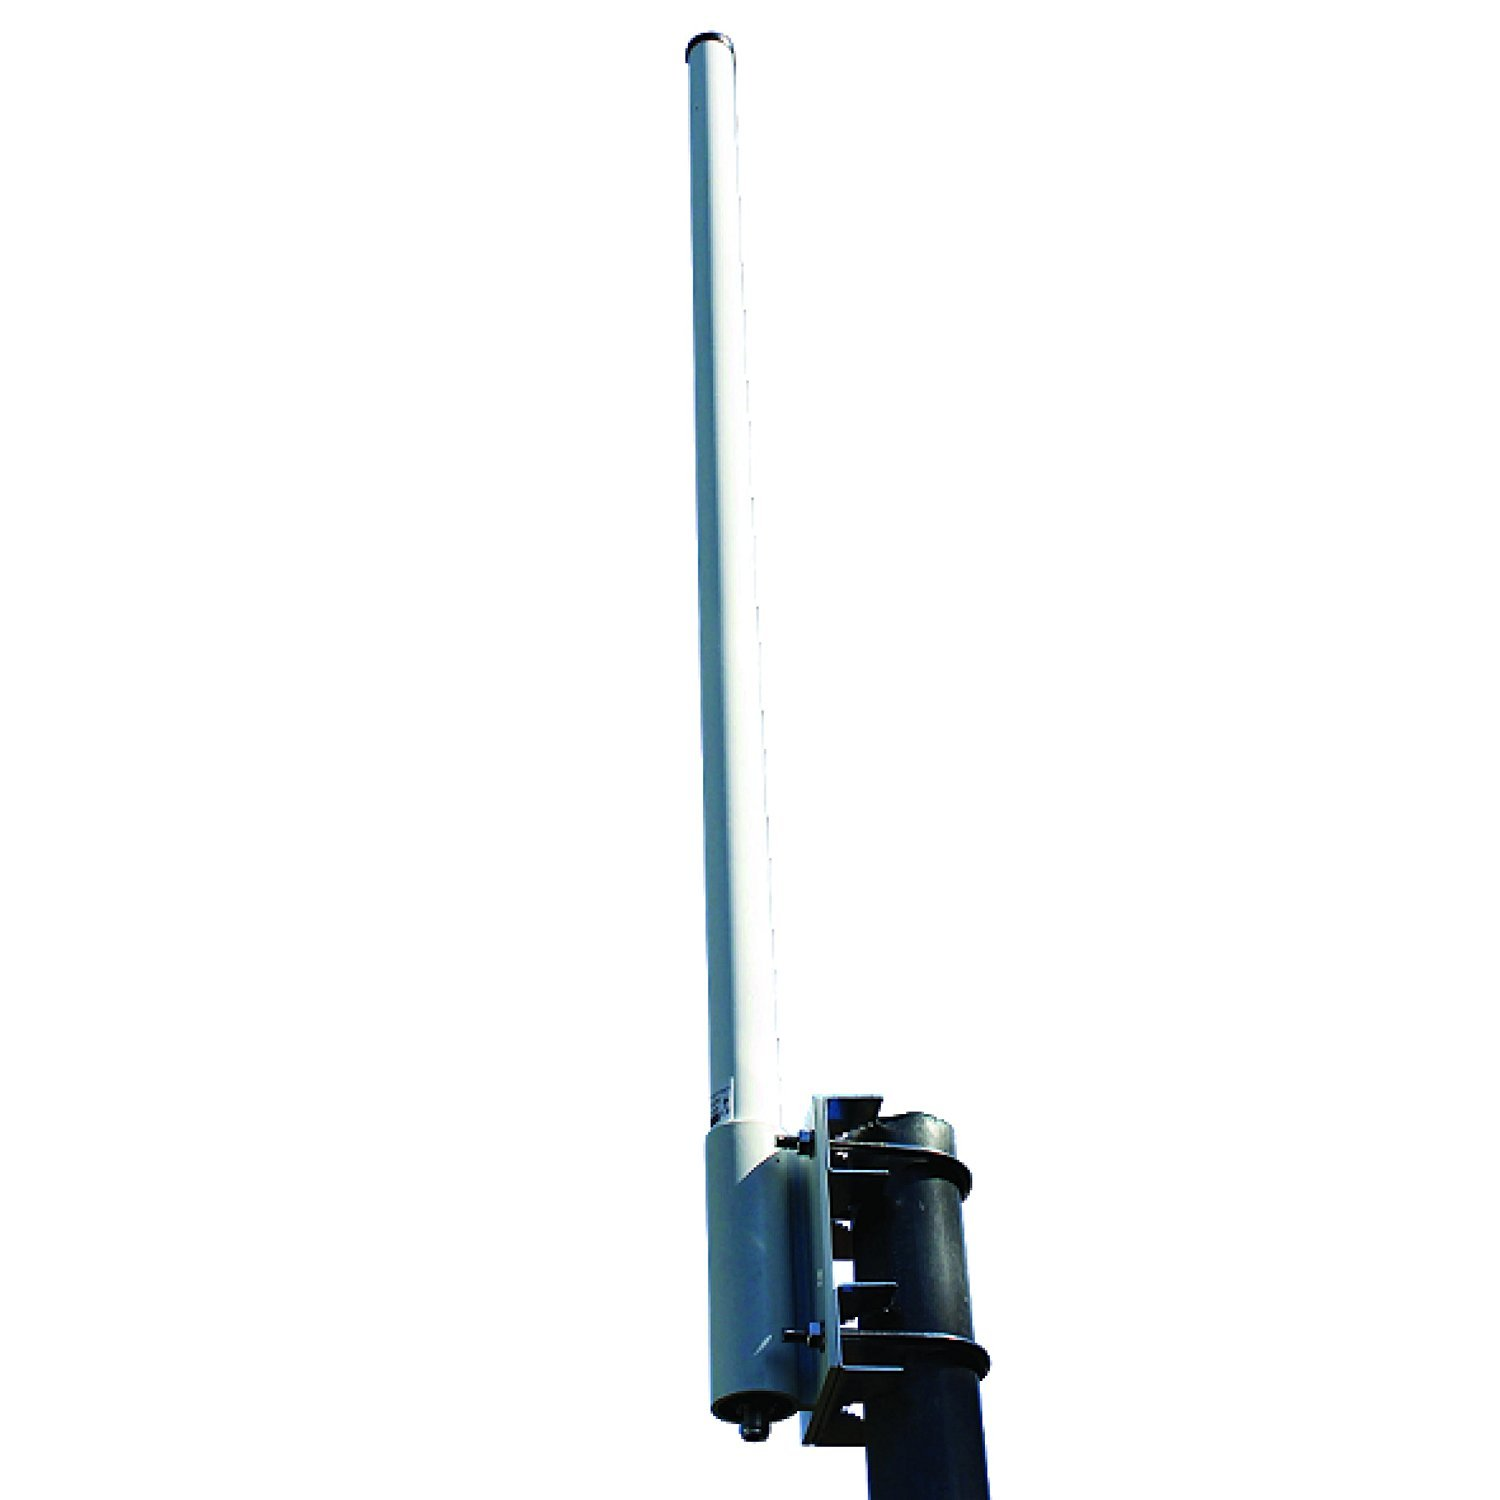 Wifi Extender Antenna (Omni-Directional) Wi-Fi Signal Booster (Outdoor) Professional Grade for Home, Commercial Office or RV (15dBi) Long Range by Antenna World